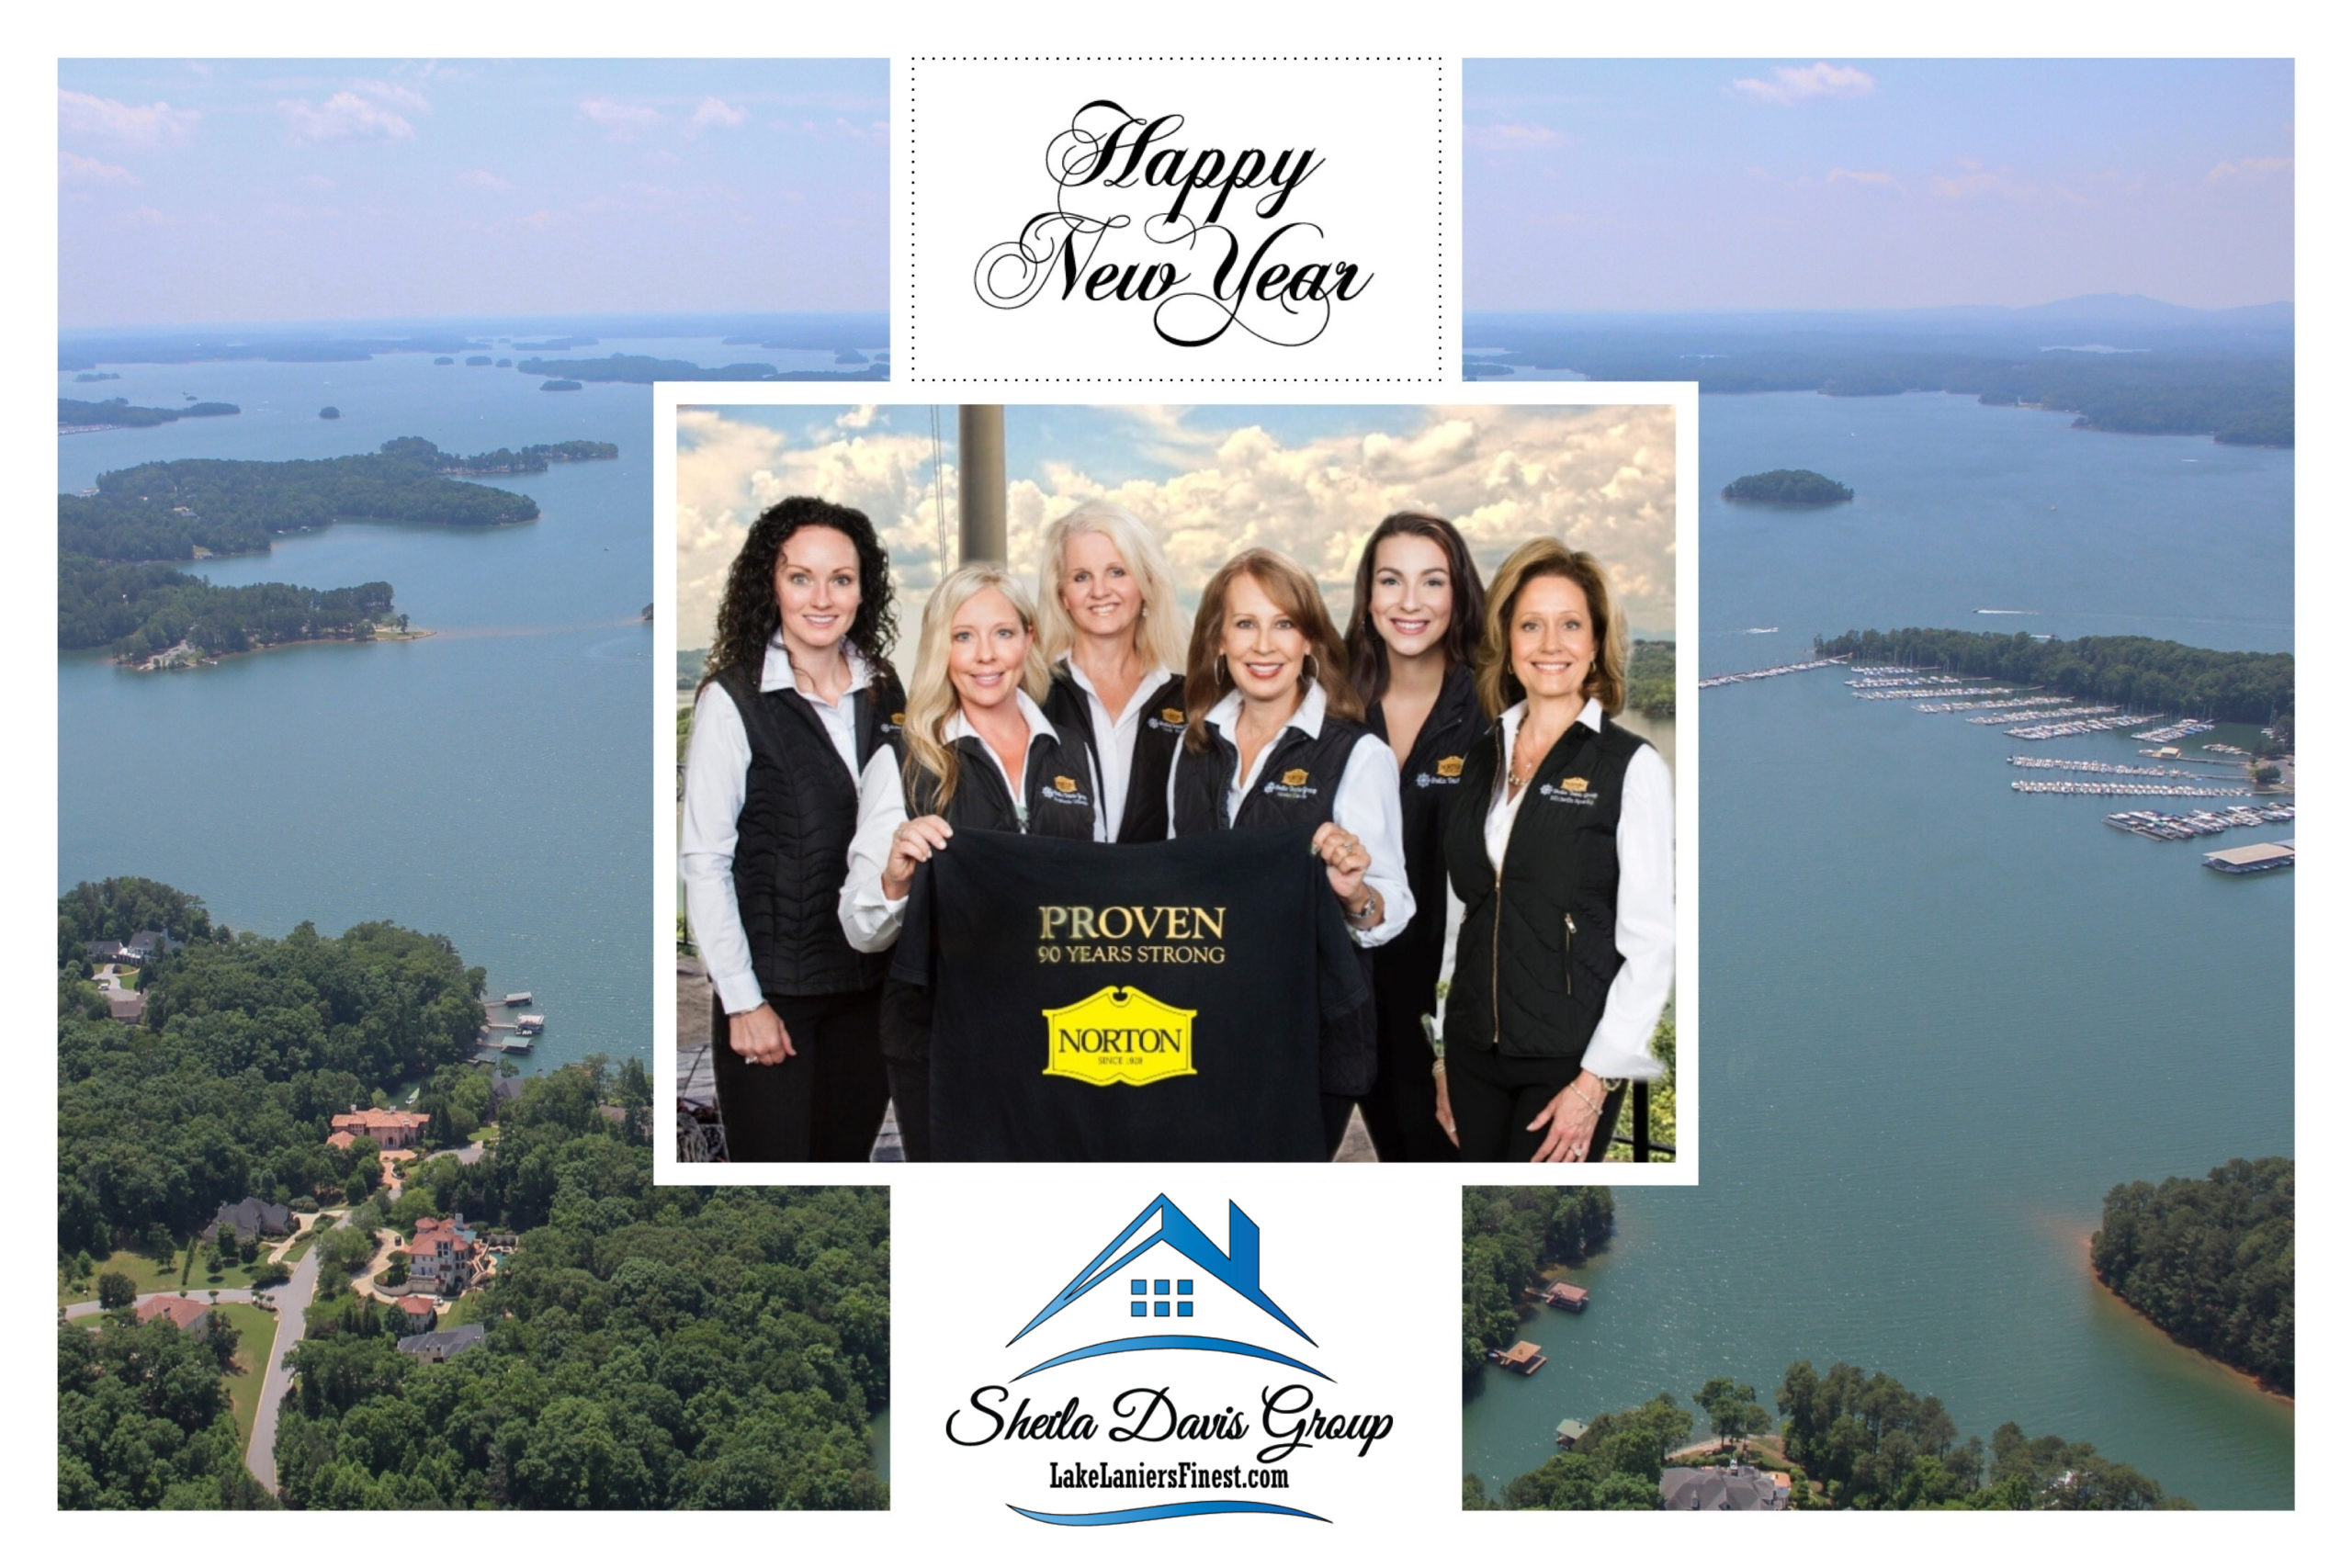 Sheila Davis Group Happy New Year 2020